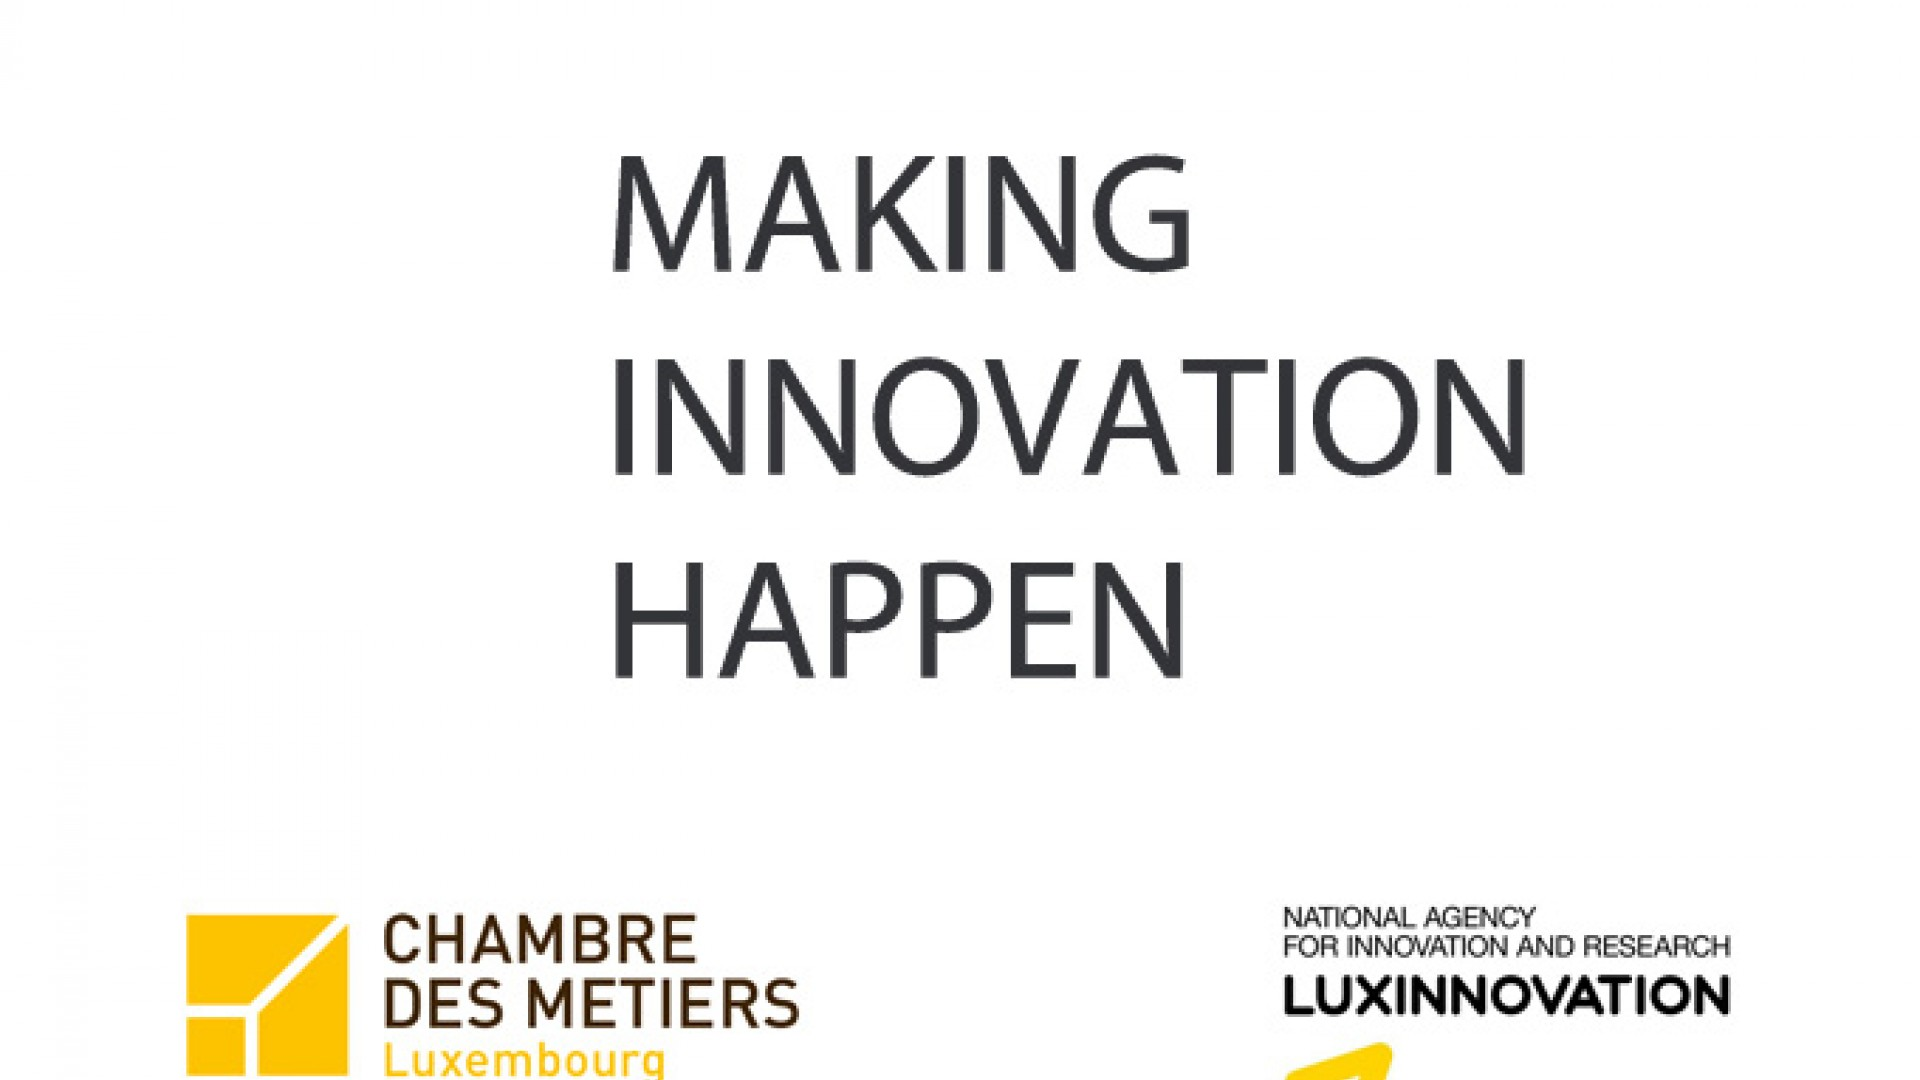 MAKING INNOVATION HAPPEN